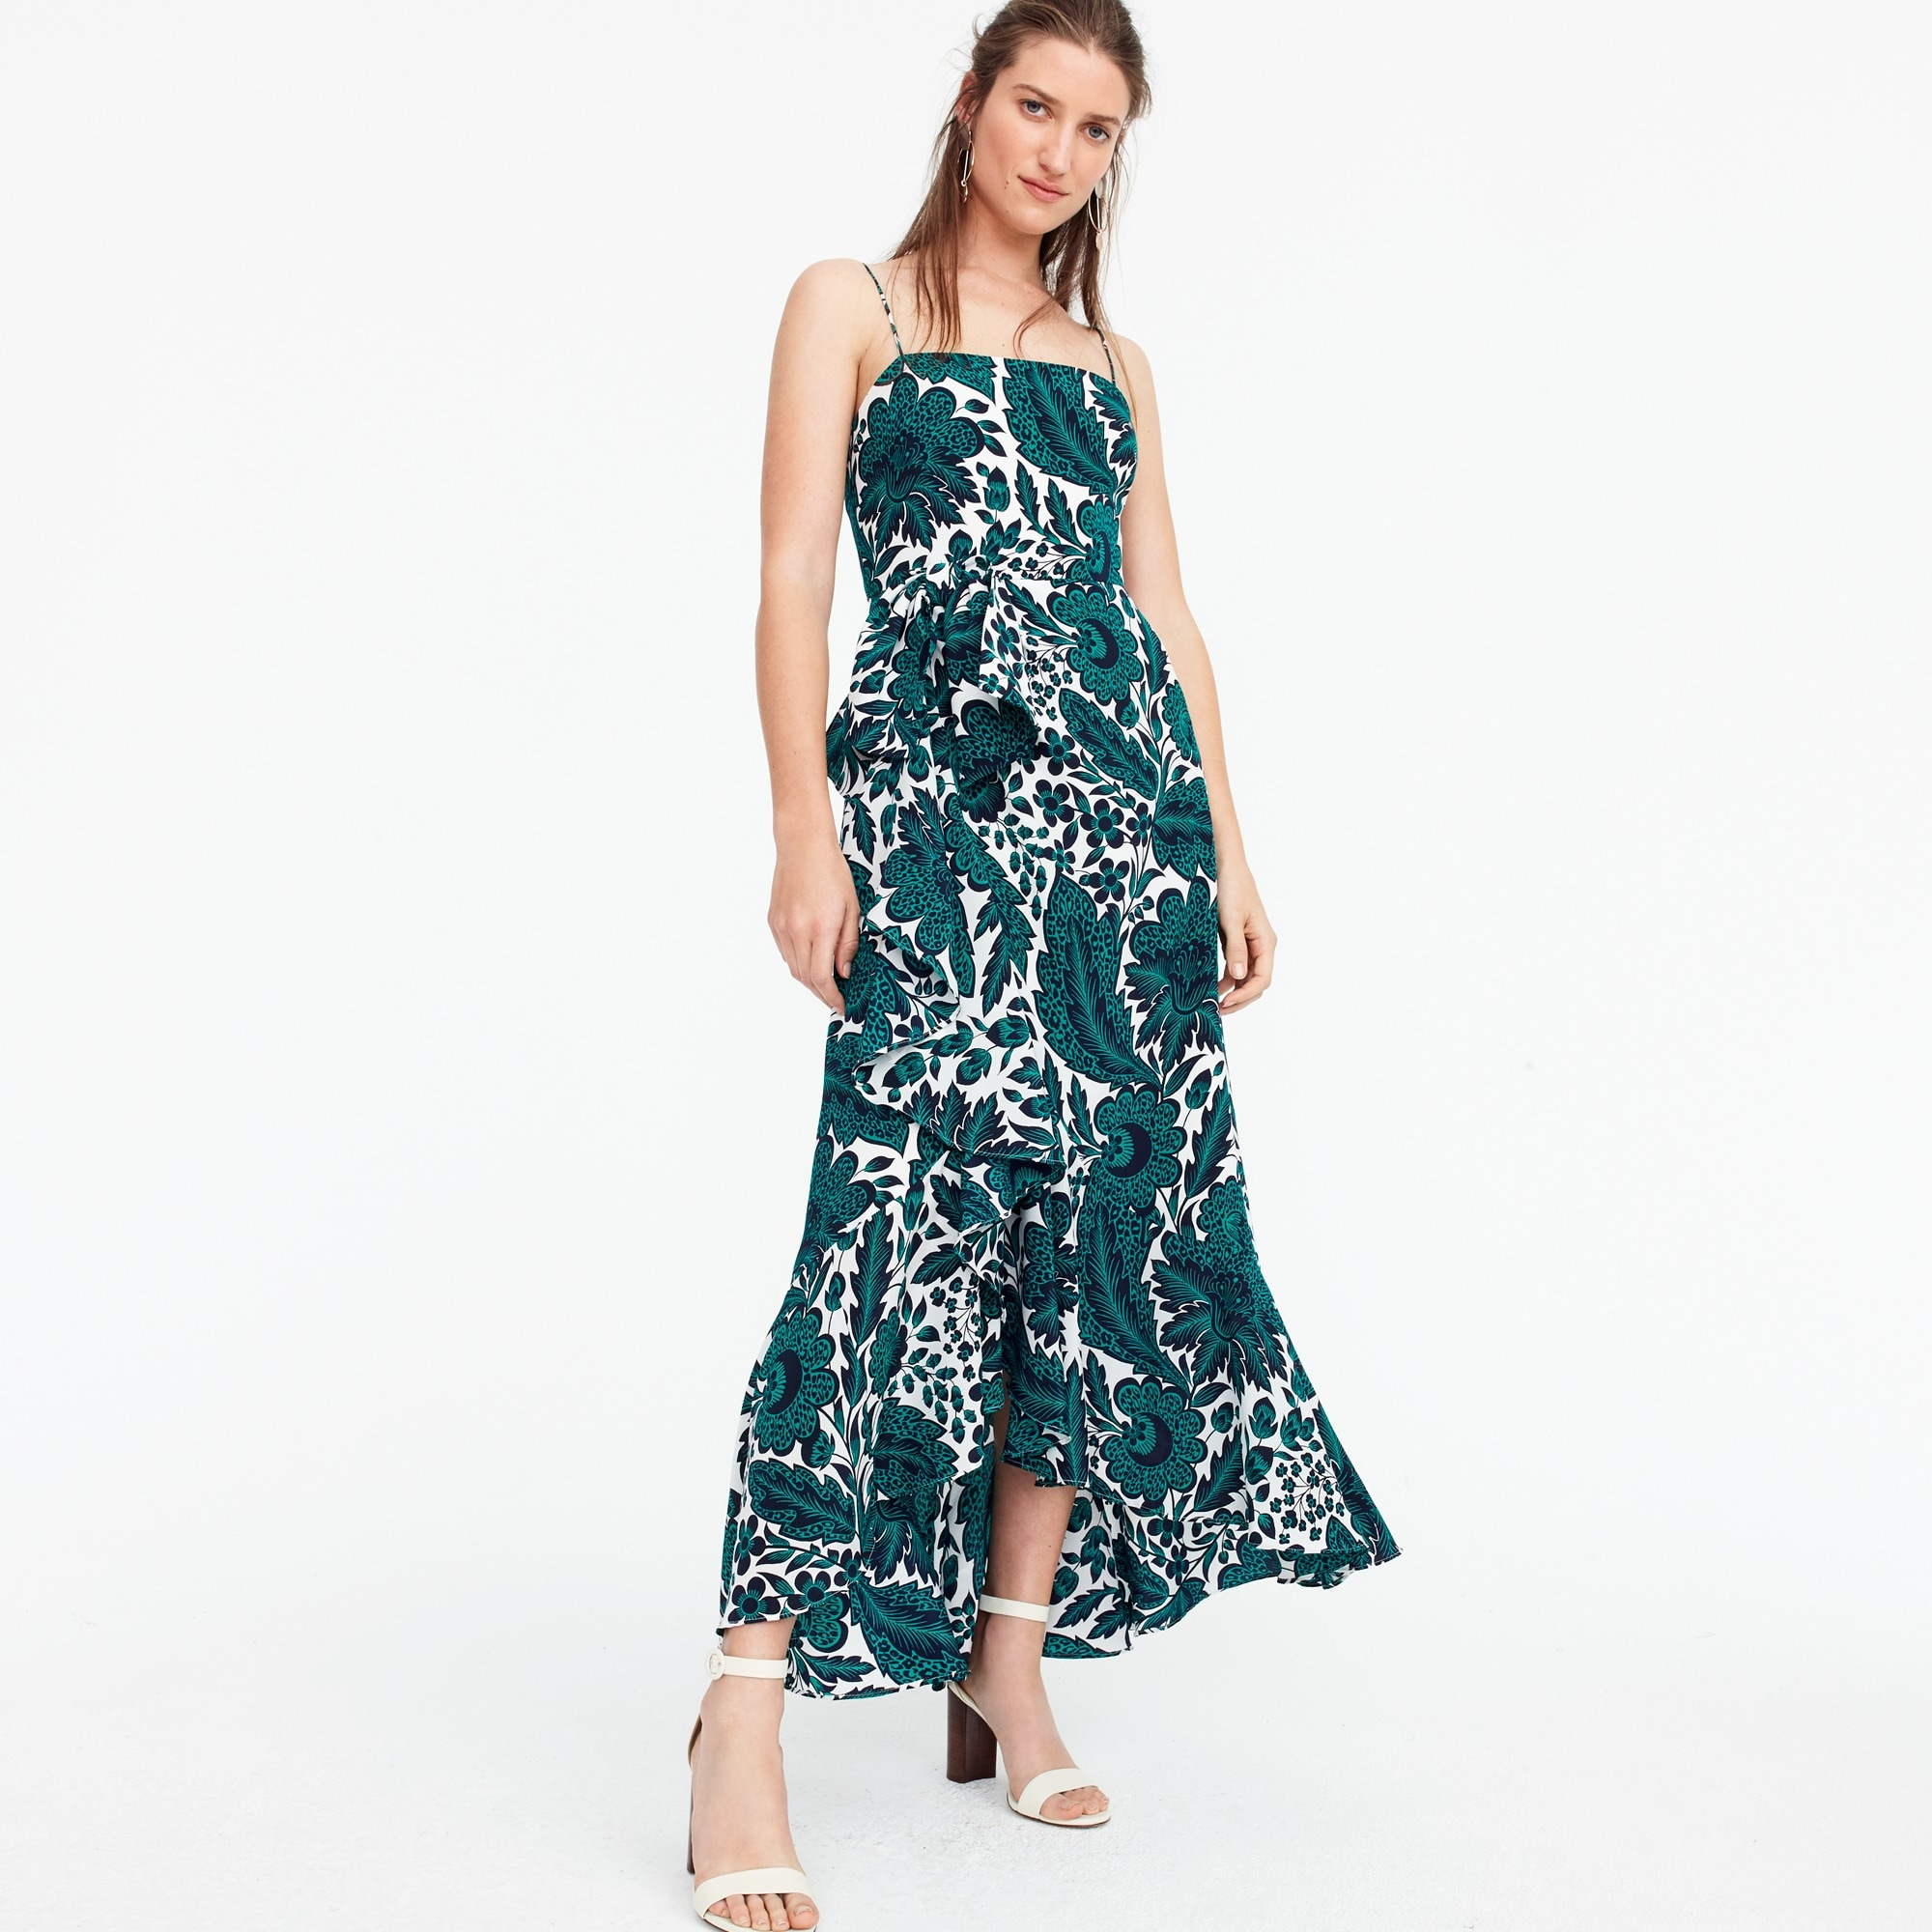 Ruffle hi-low silk dress in tropical floral women dresses c